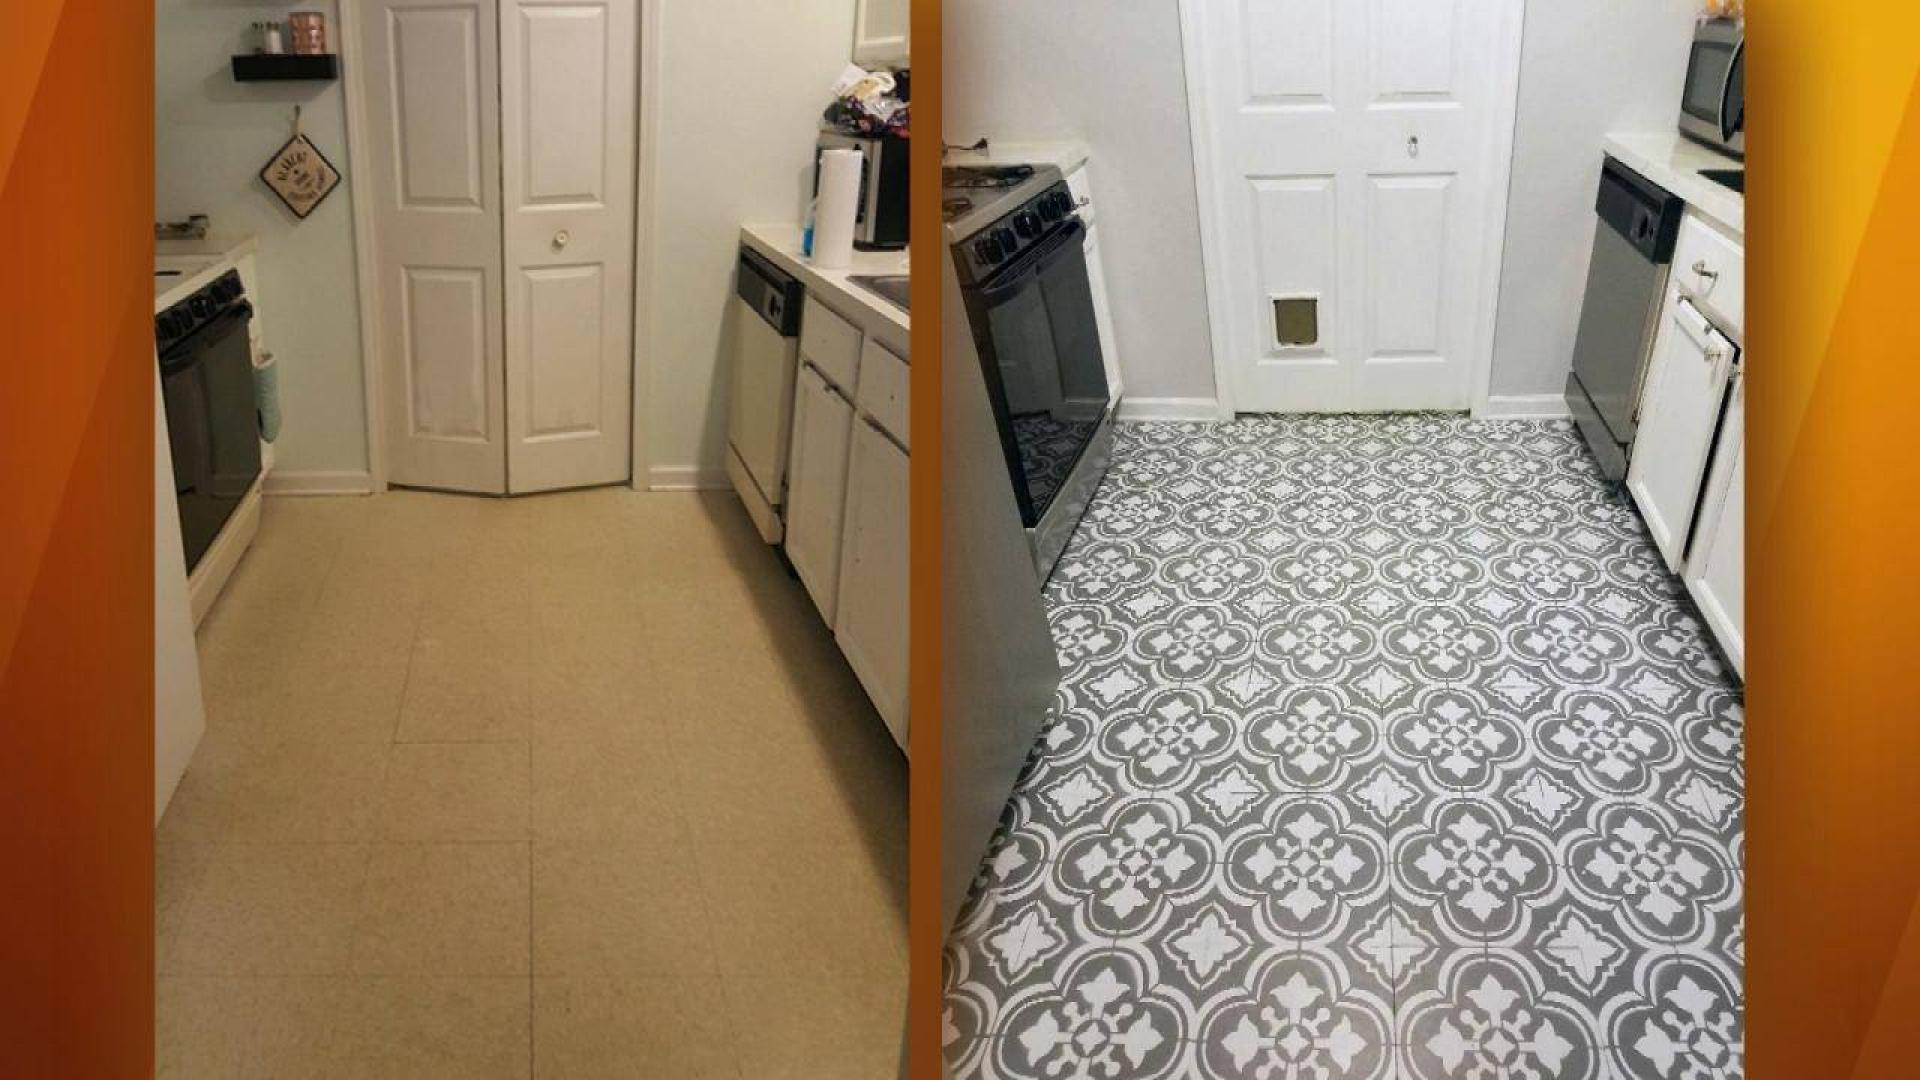 How To Make Your Old Ugly Linoleum Floor Look Like Expensive - How to whiten linoleum floors